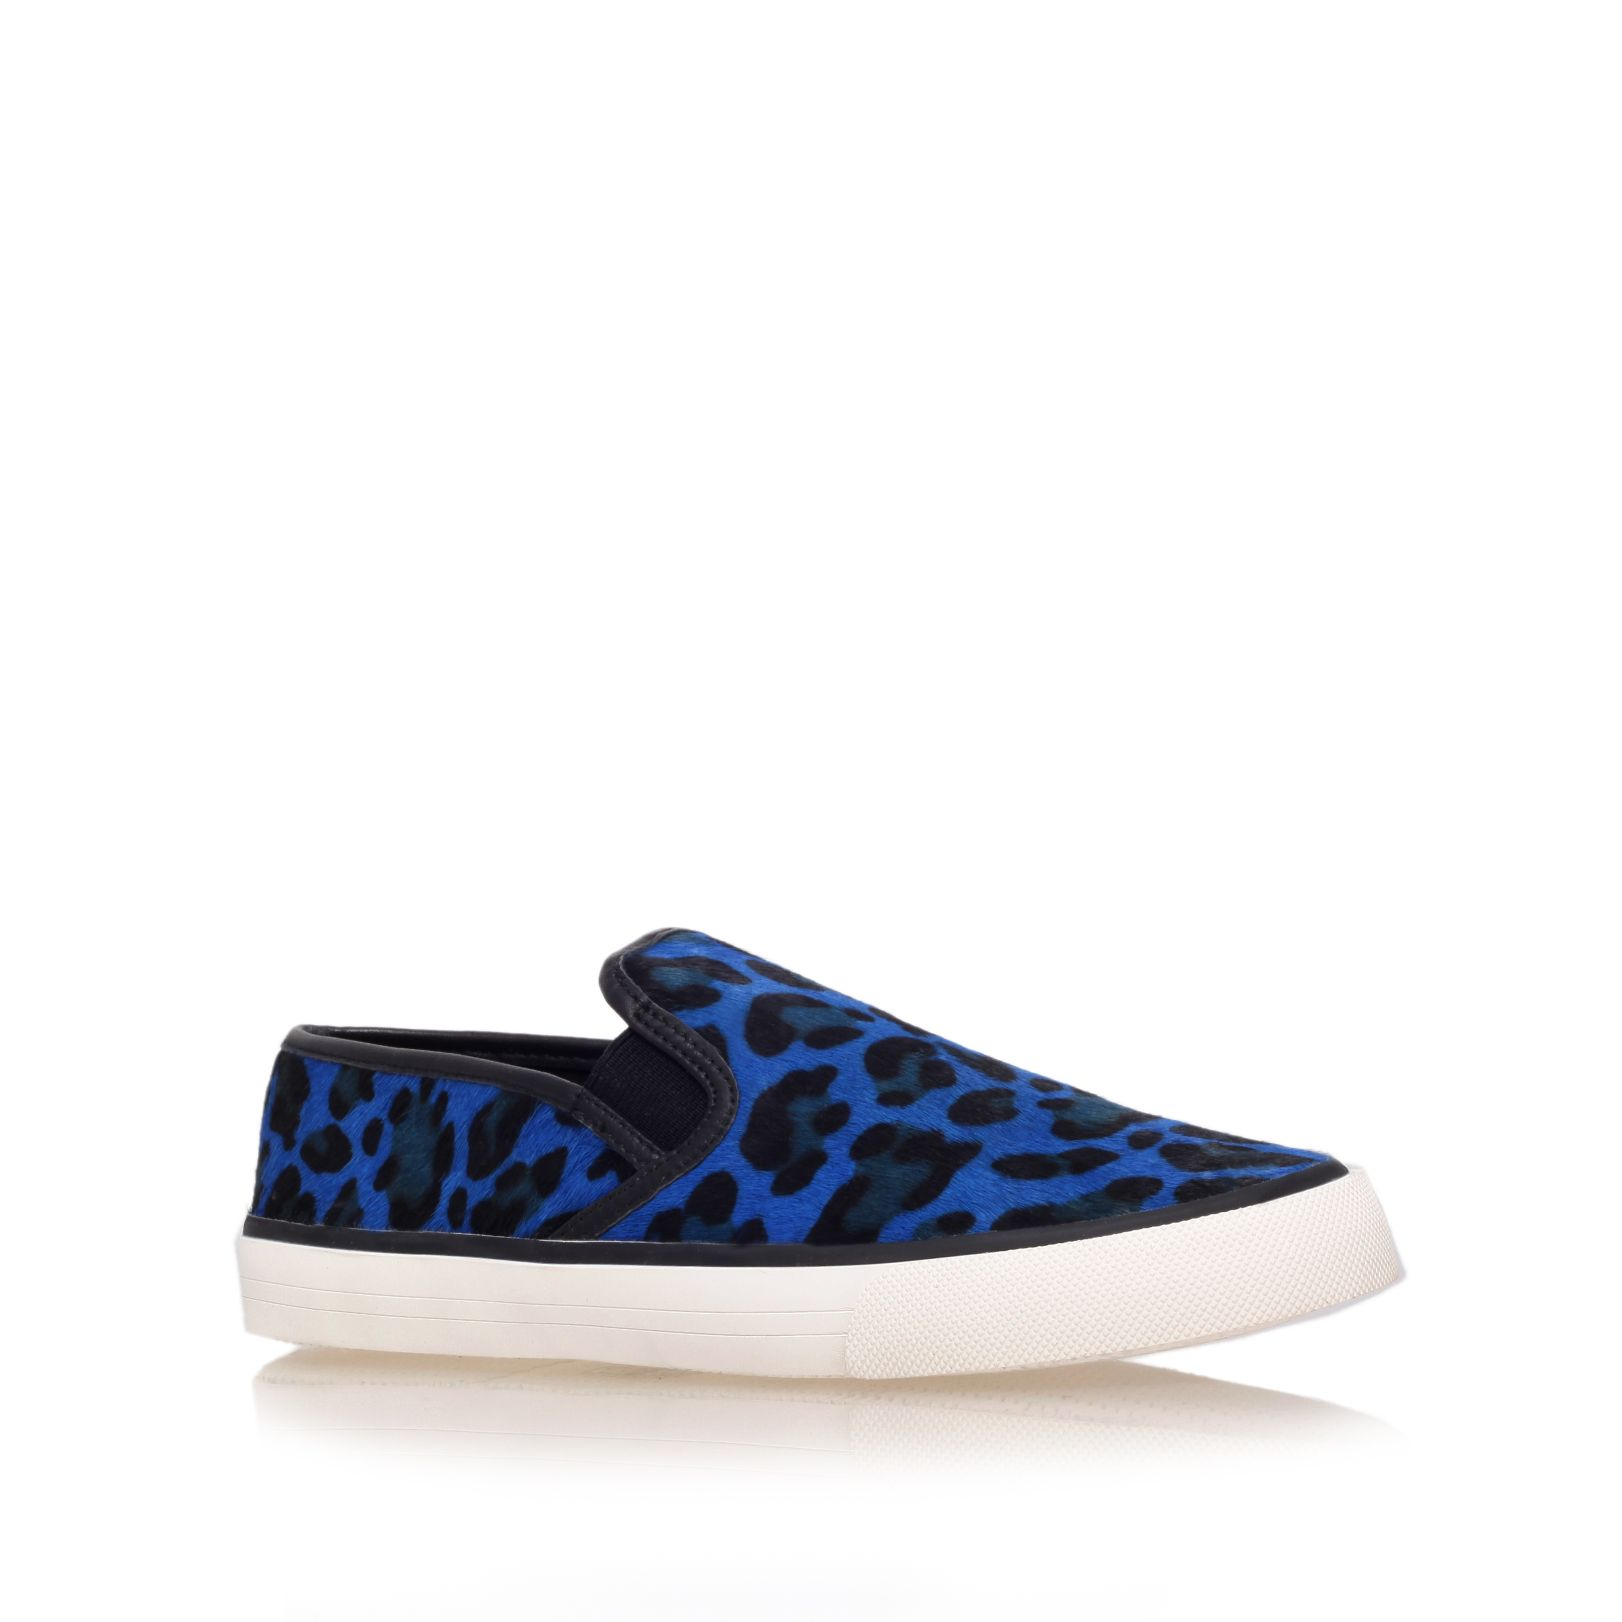 Laurel flat low top trainers